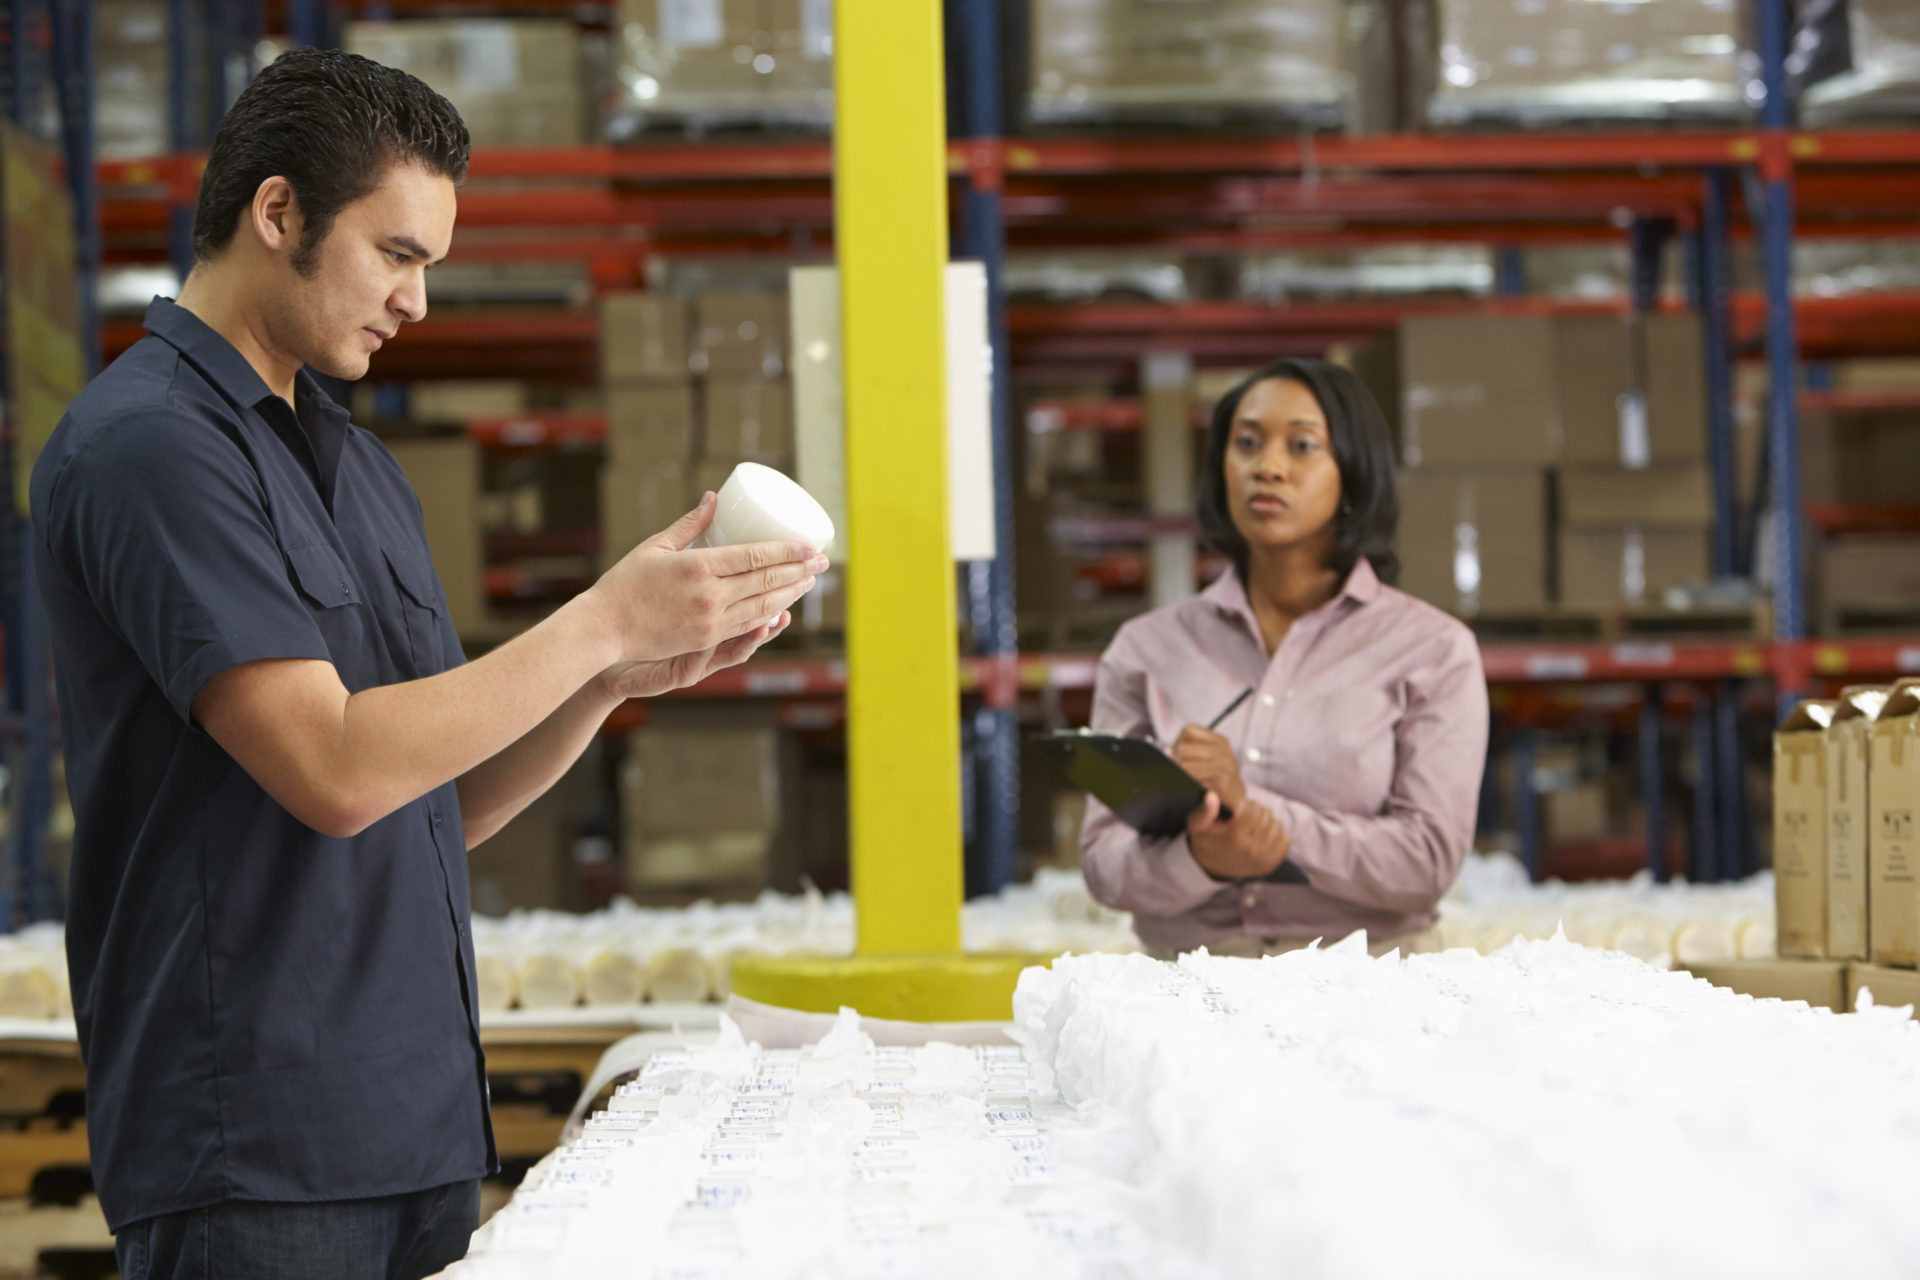 Automation technology packaging checks